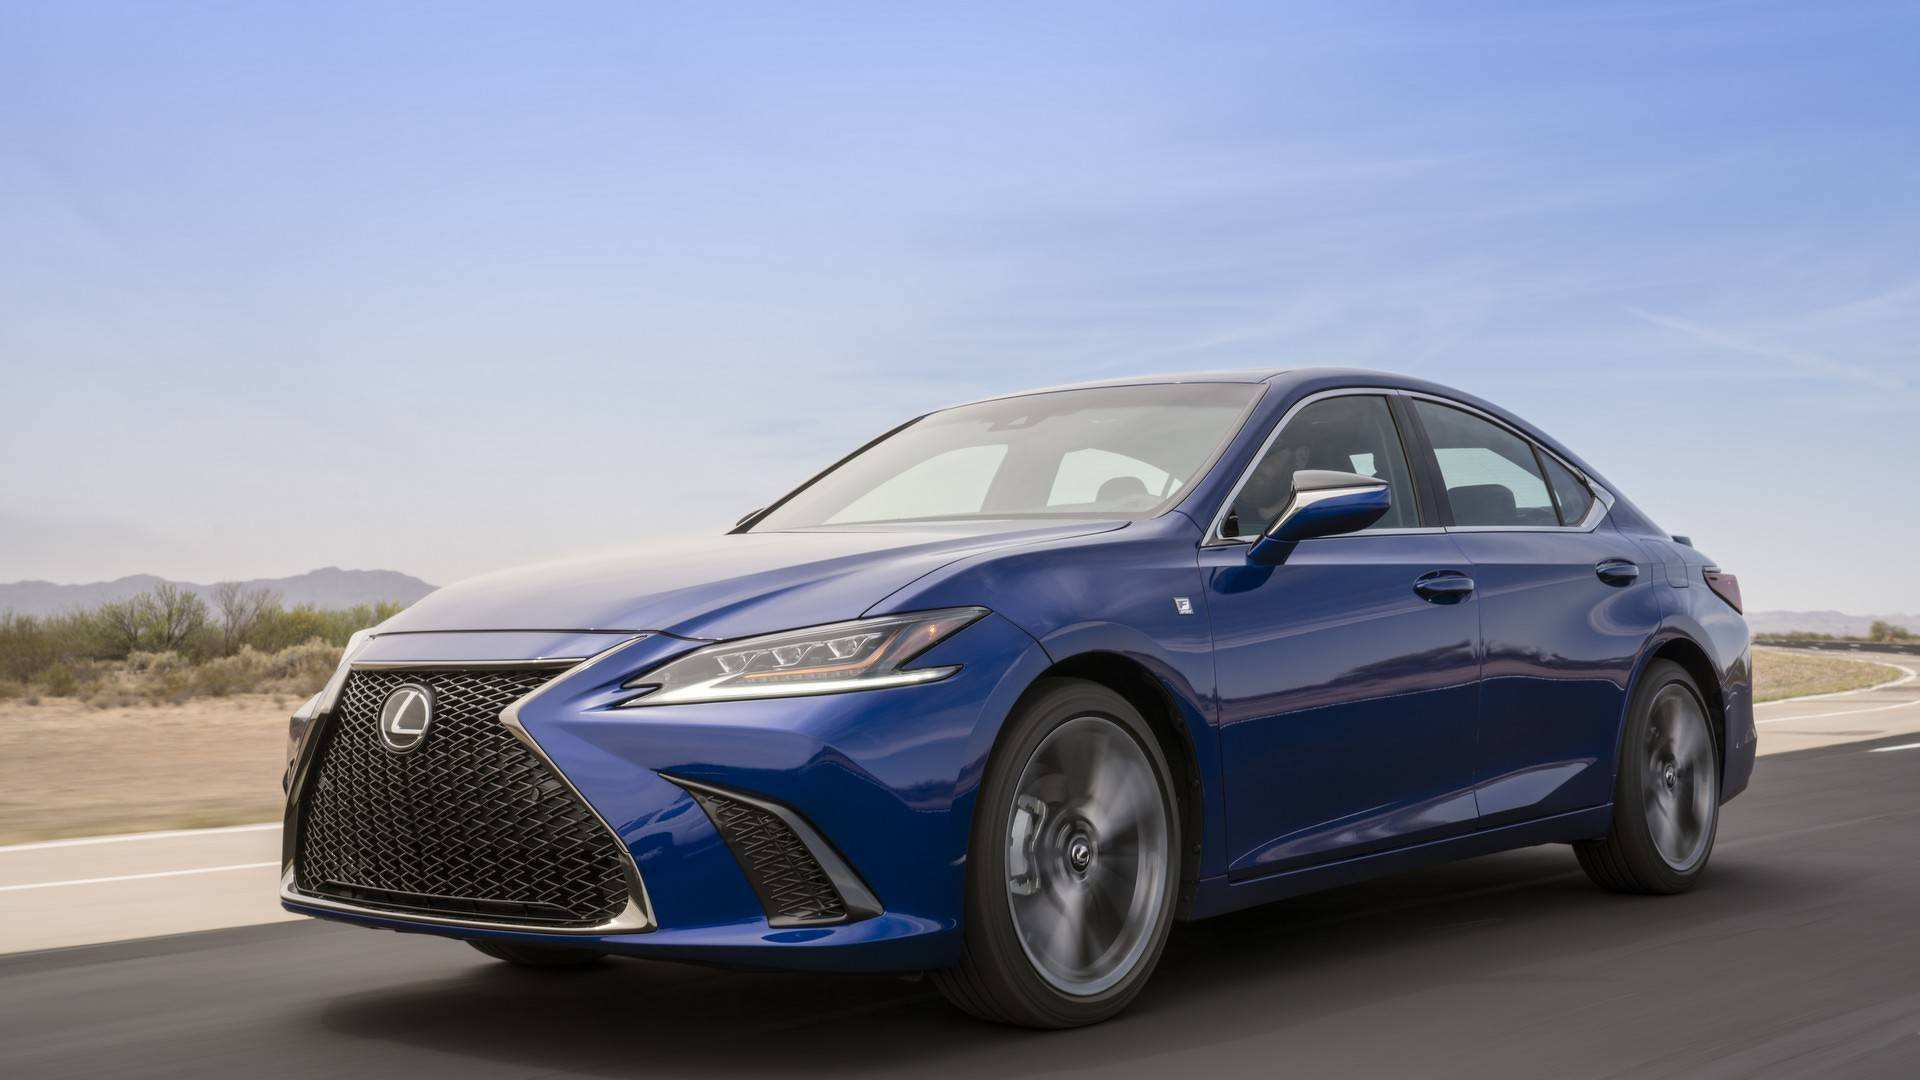 95 New The 2019 Lexus Es Hybrid Price Review And Price New Concept for The 2019 Lexus Es Hybrid Price Review And Price